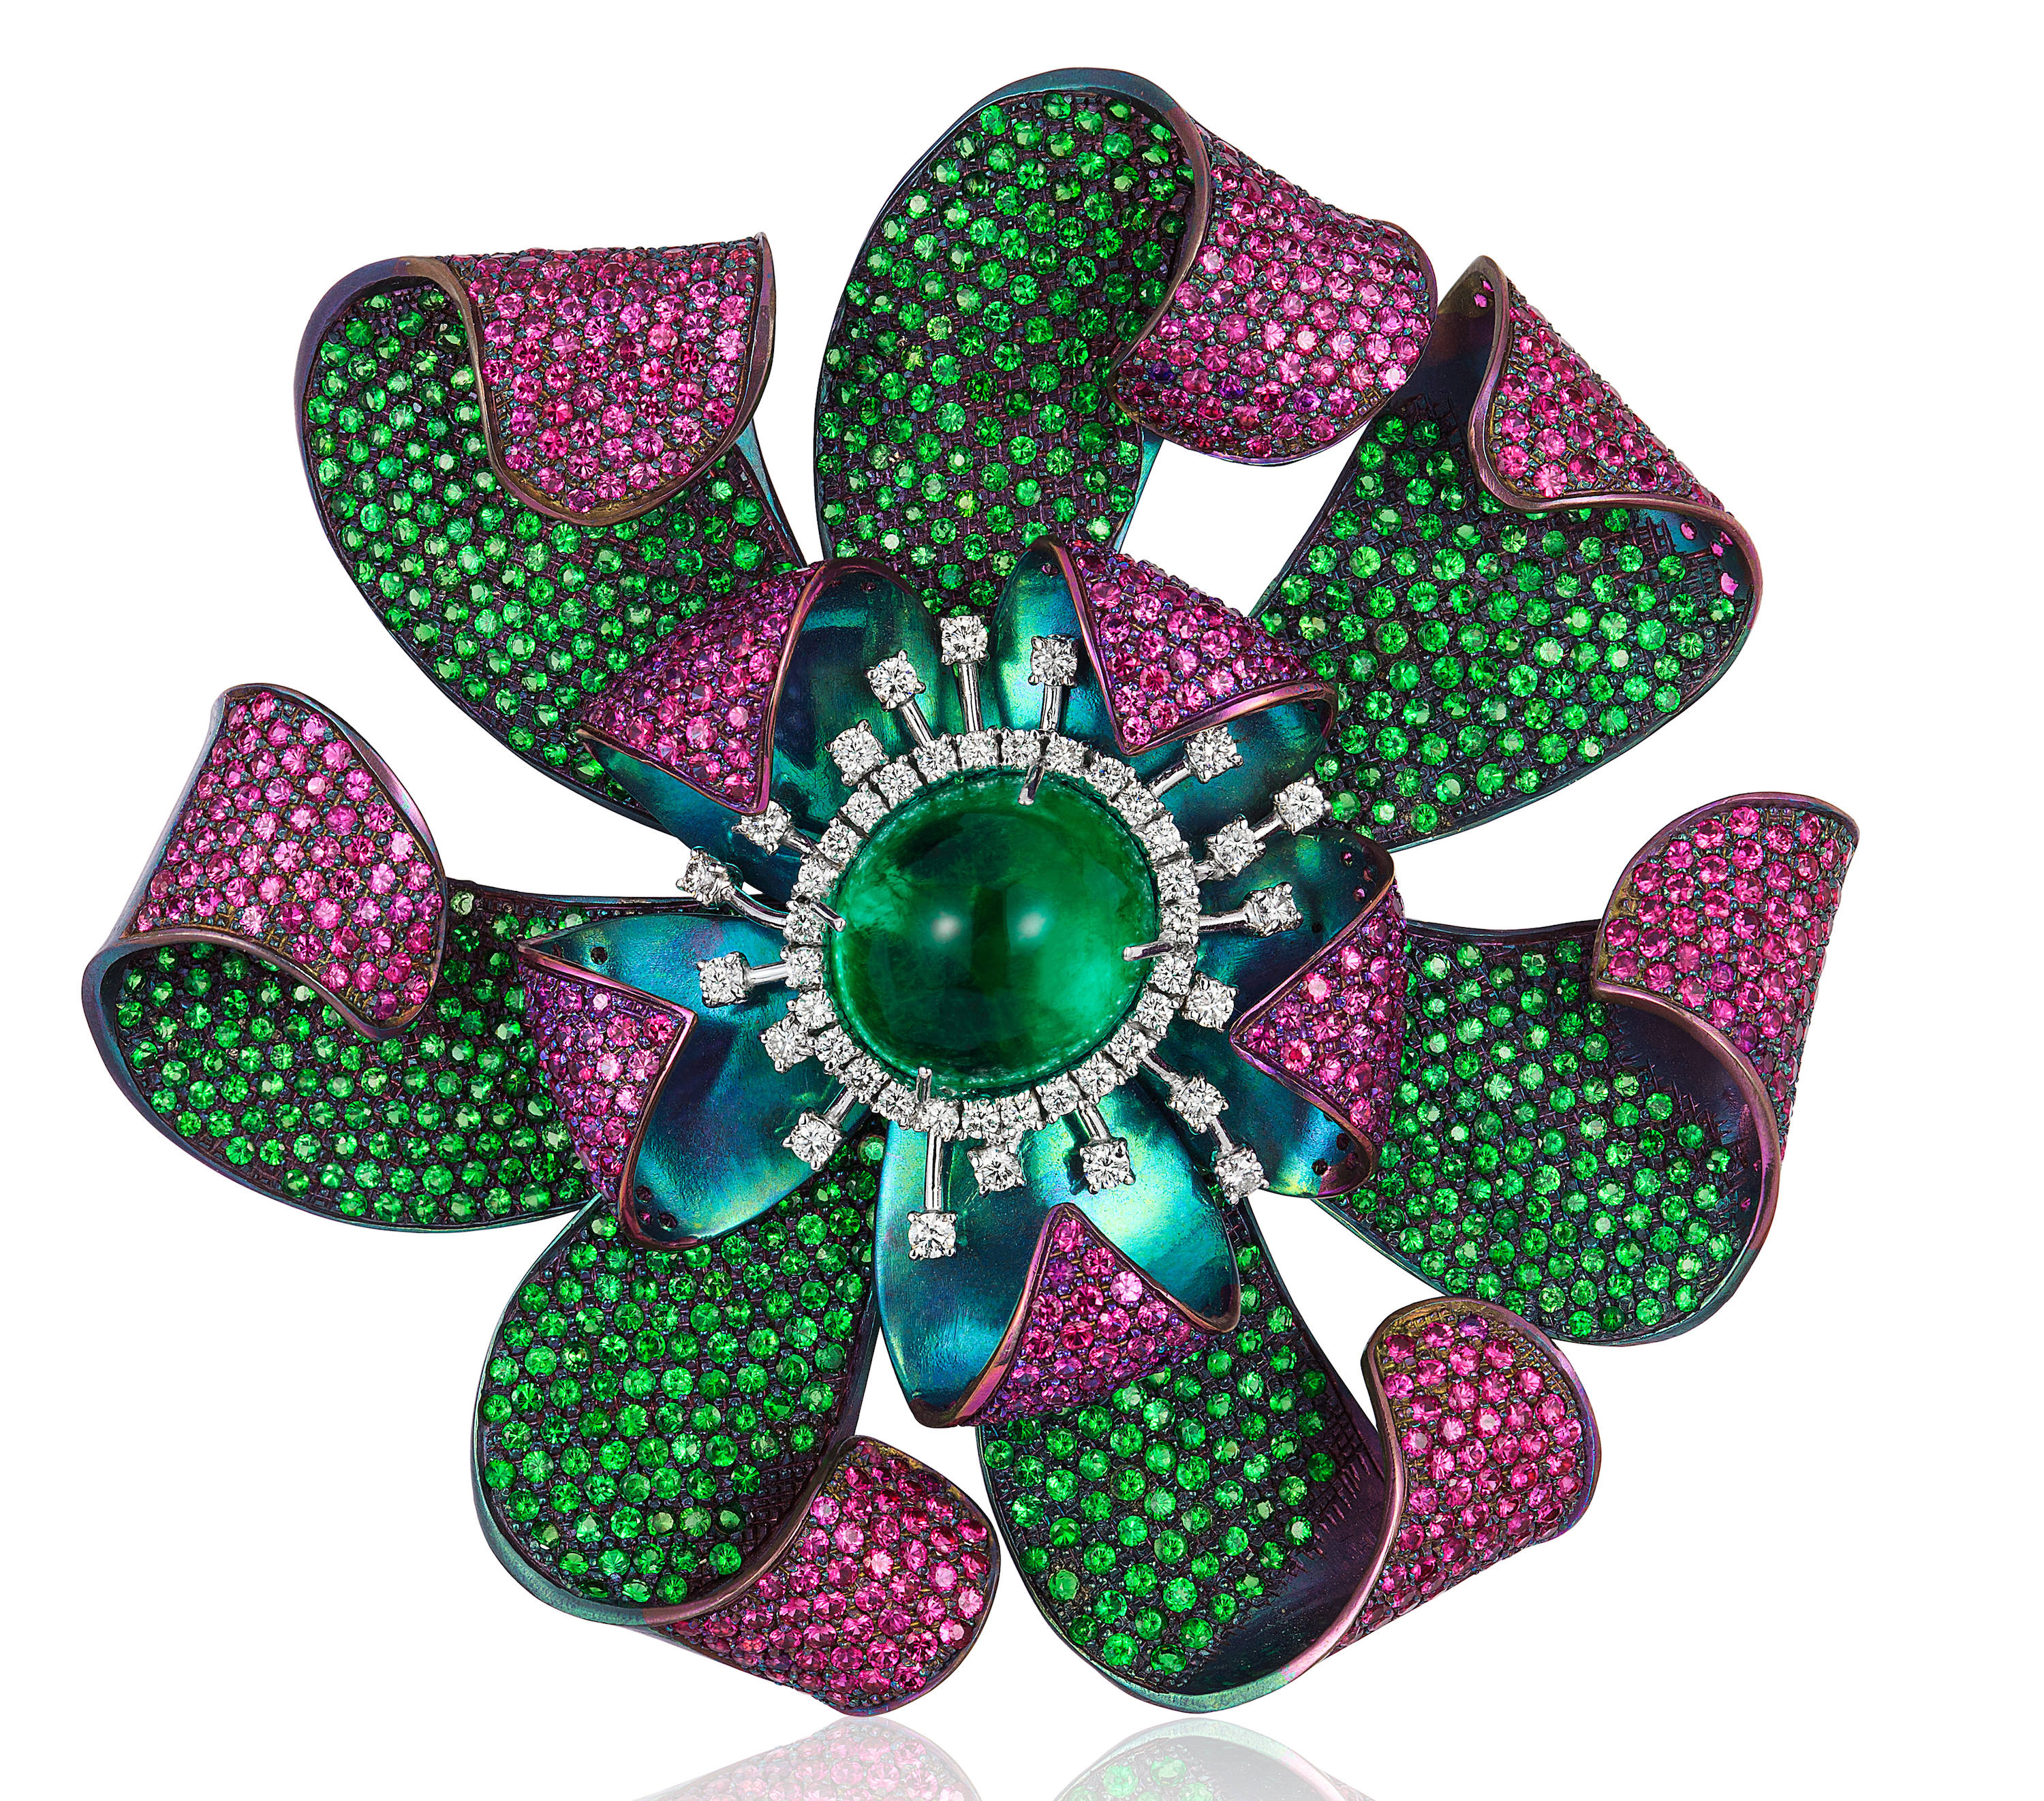 Andreoli flower brooch | JCK On Your Market